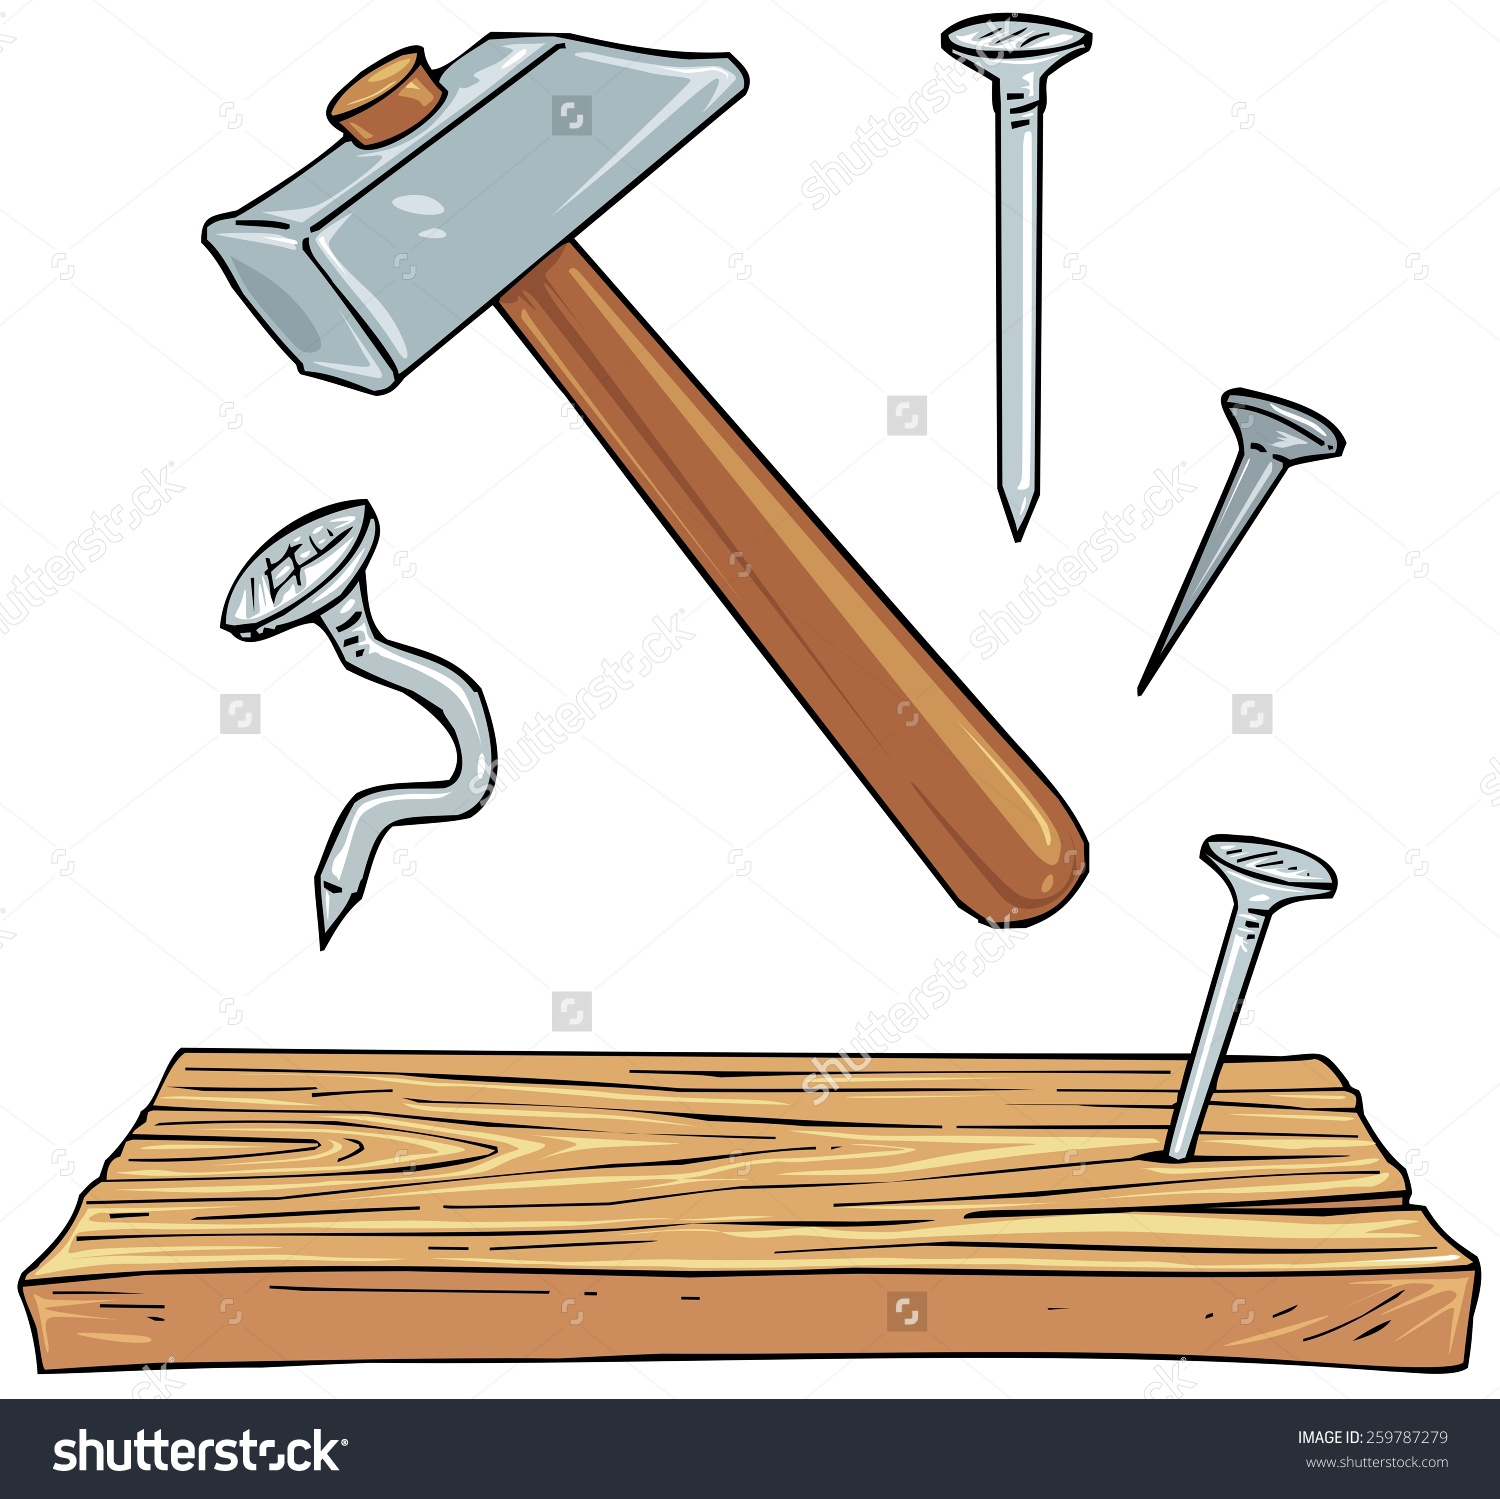 Nails carpenter tool pencil. Clipart hammer woodworking